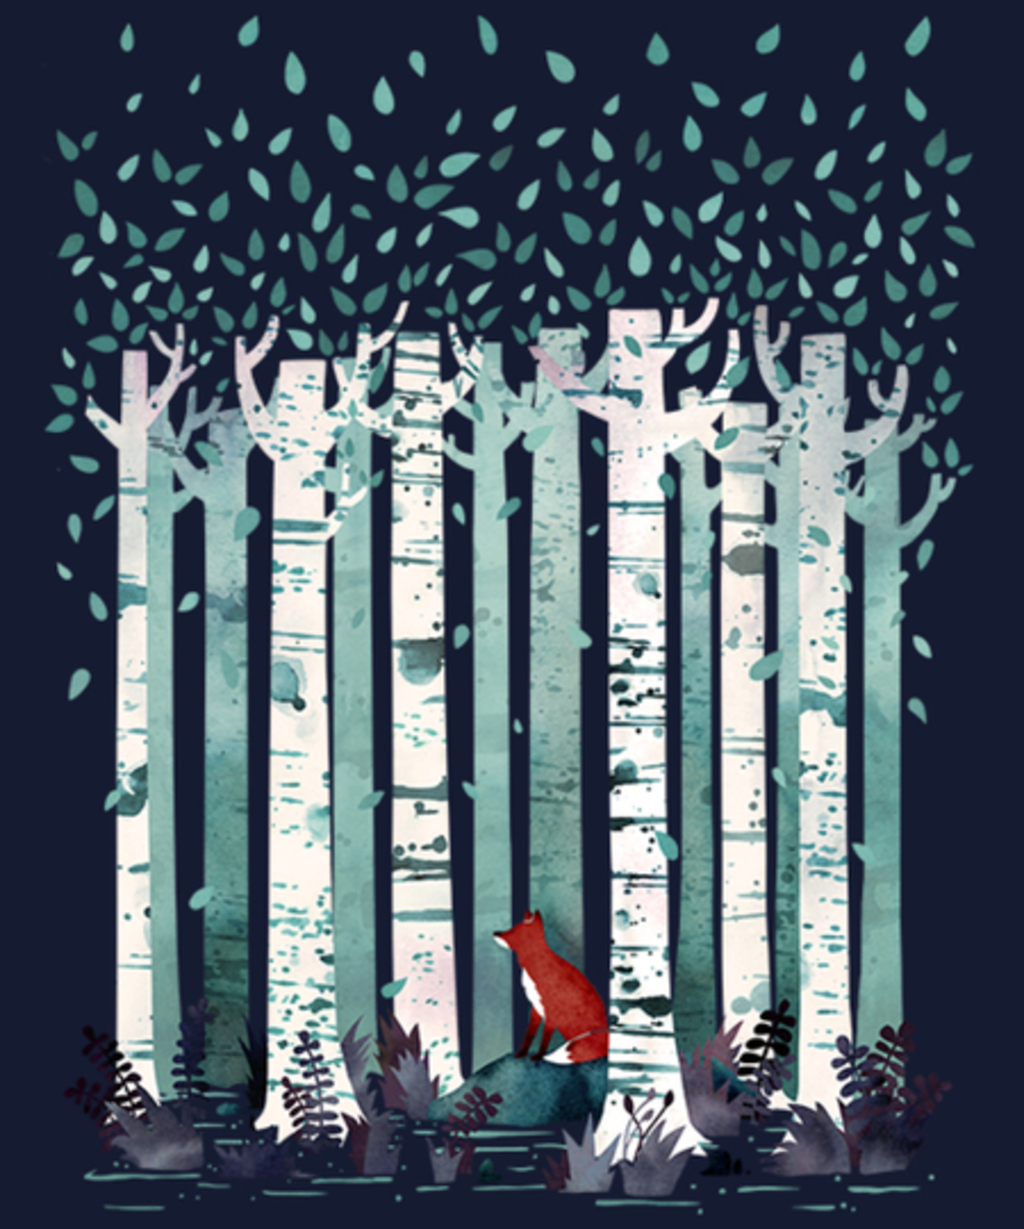 Qwertee: The Birches